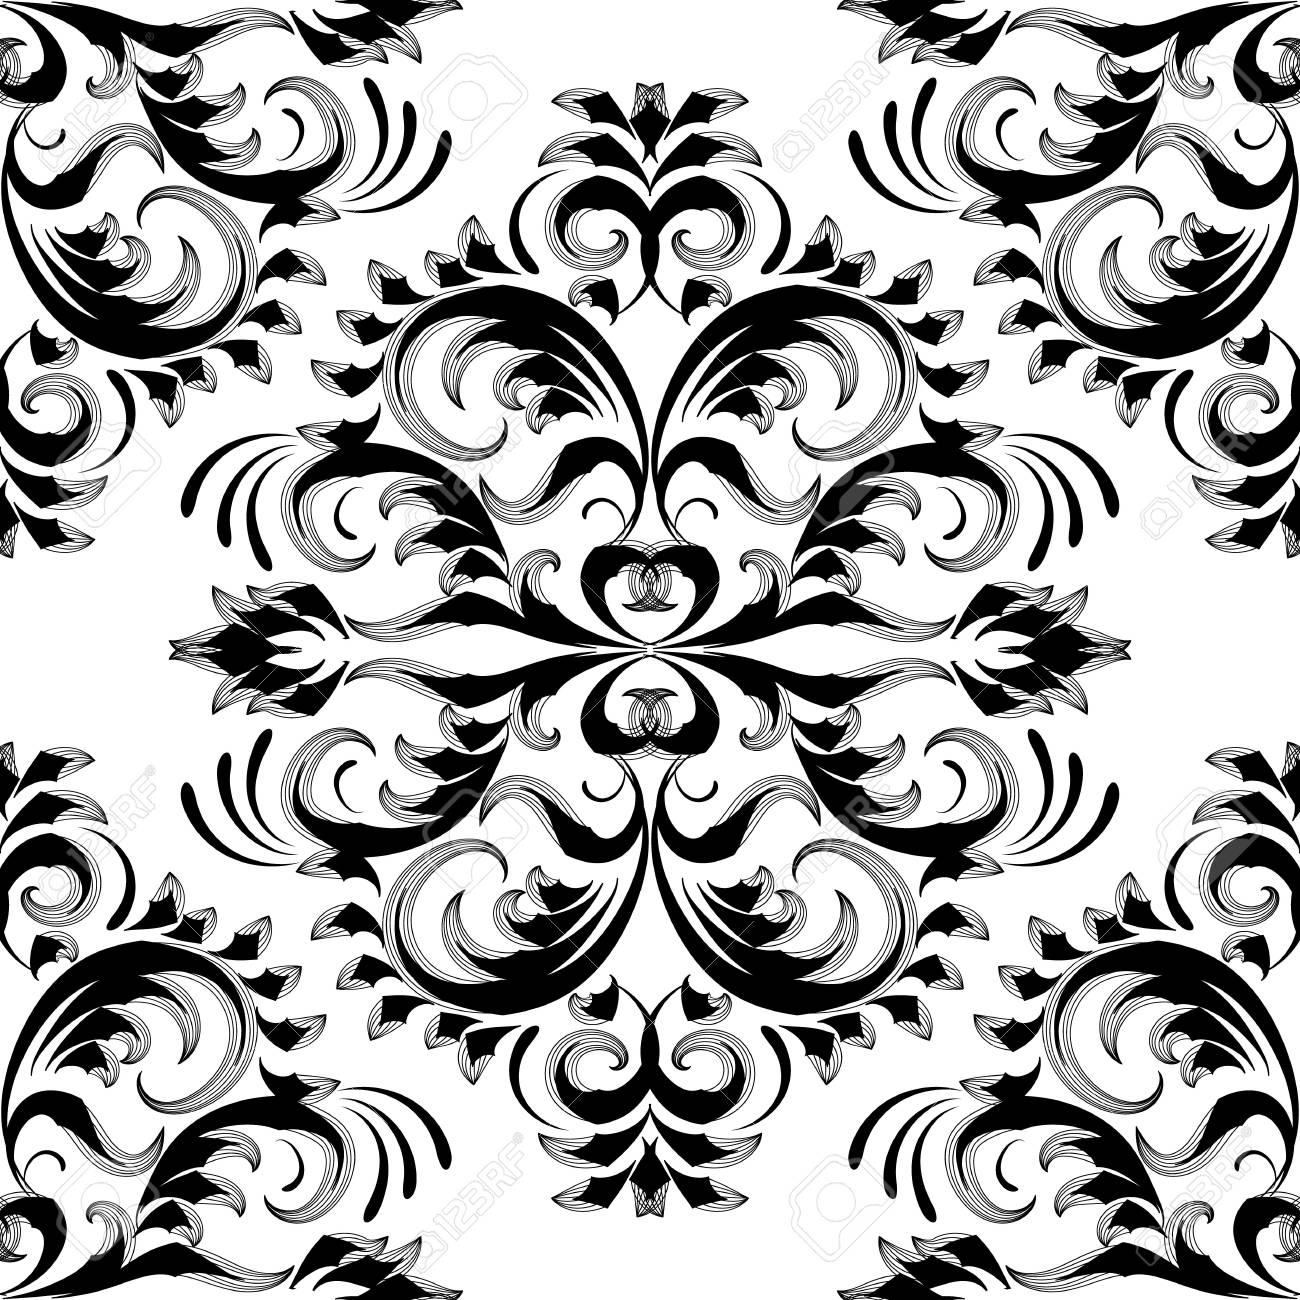 Black white vector background wallpaper with hand drawn line art tracery flowers, leaves, baroque ornaments in renaissance victorian style.